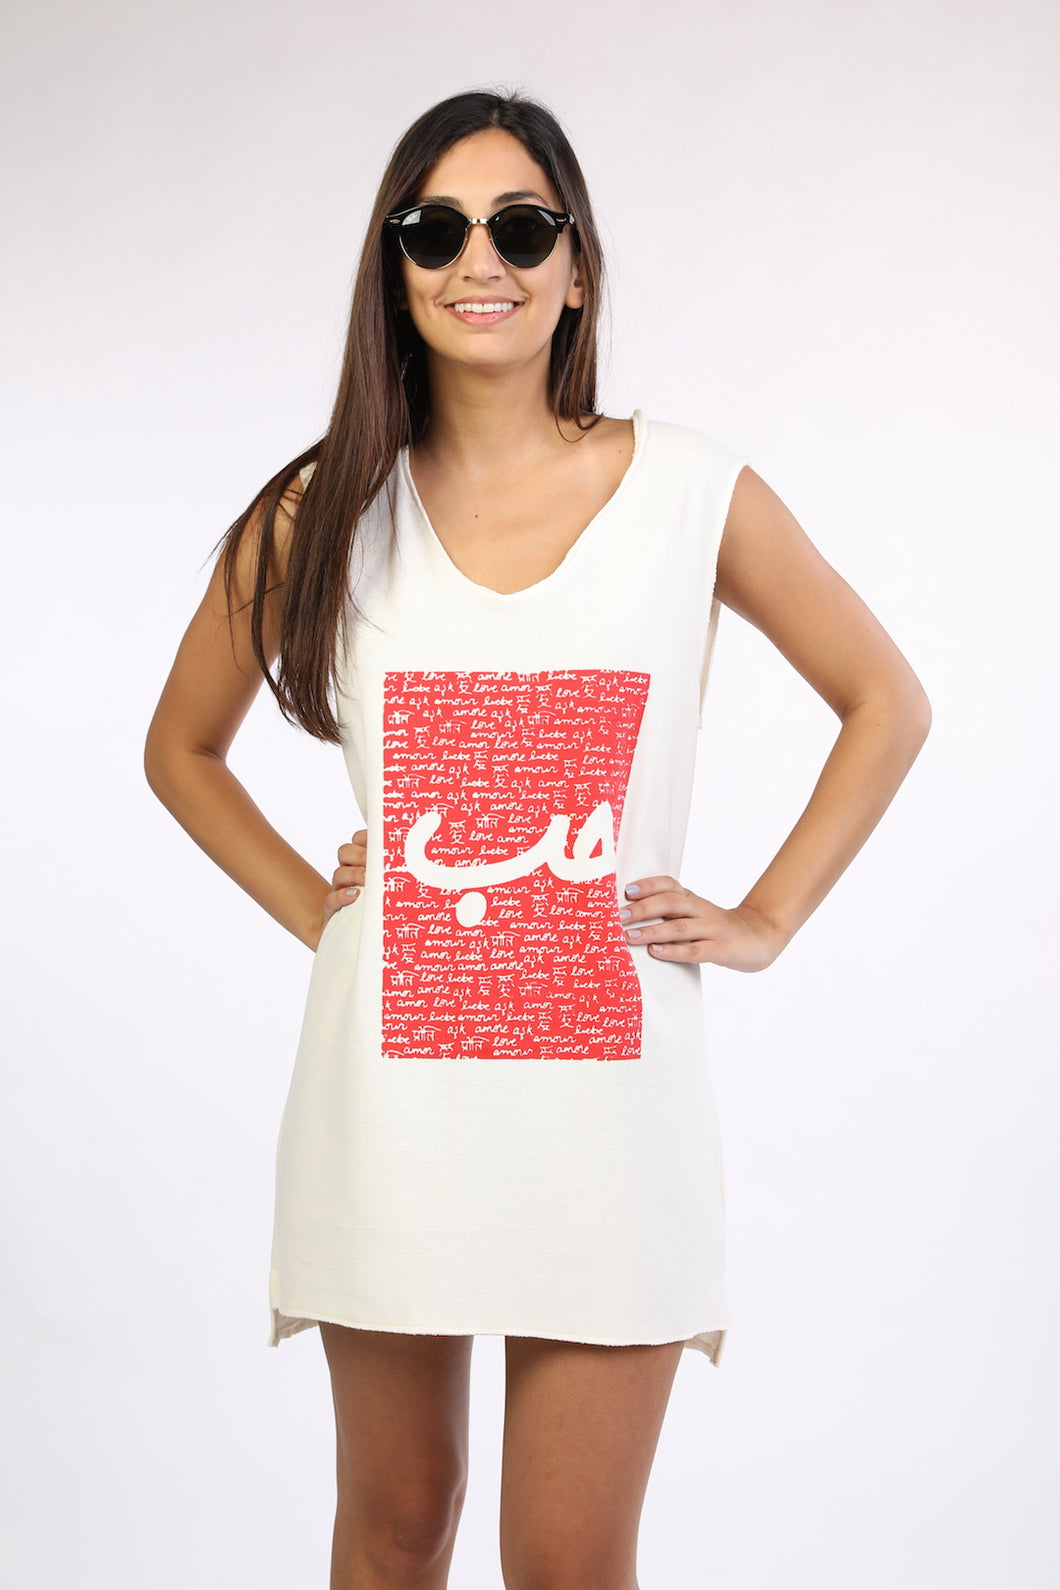 Boshies White Sleeveless Dress x Red Patch Hob